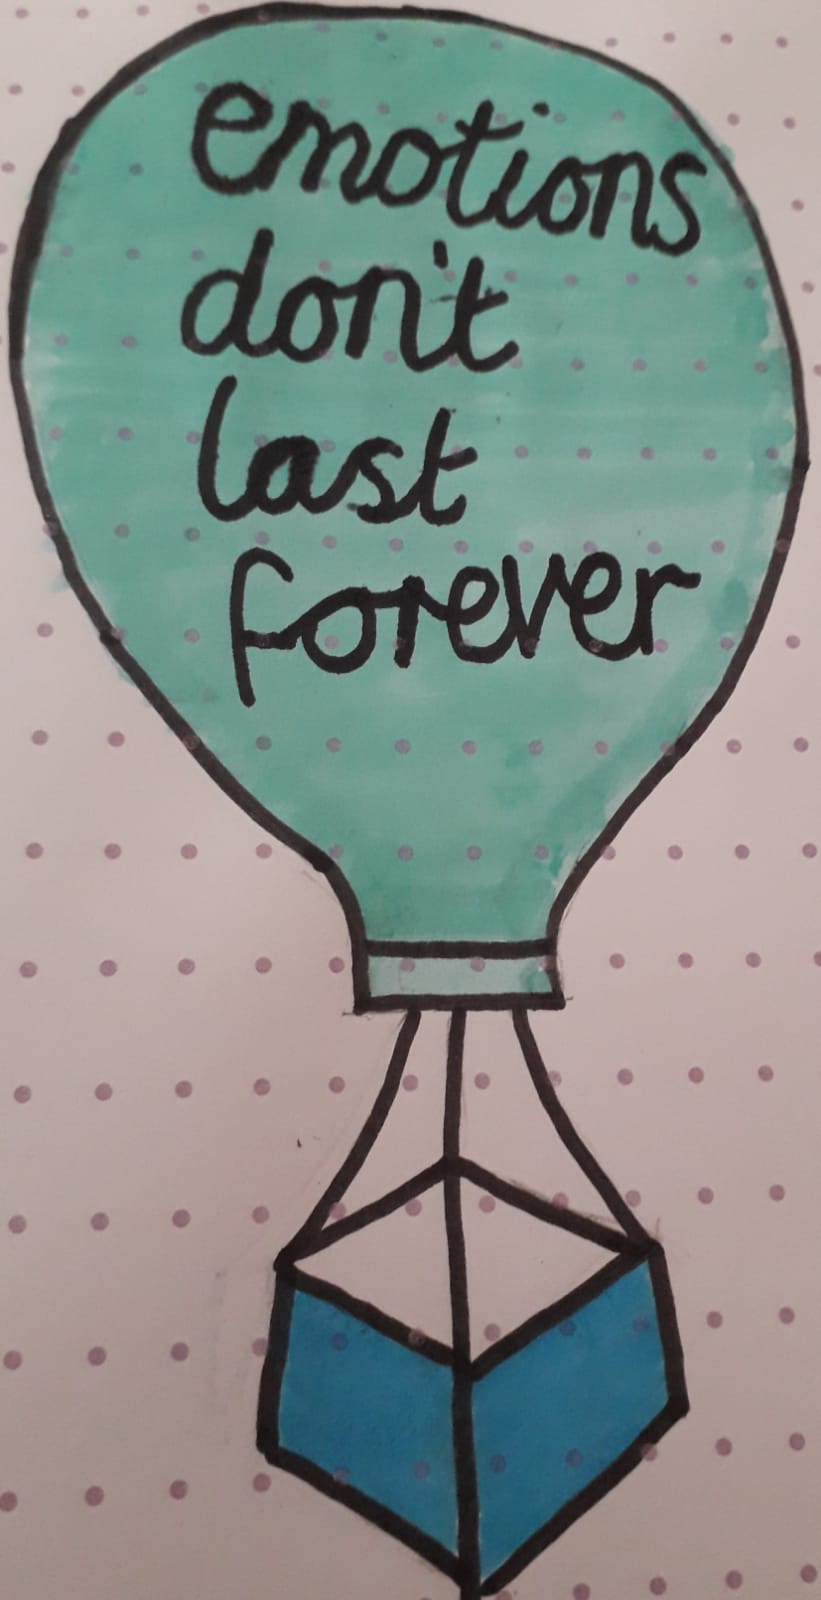 Emotions don't last forever